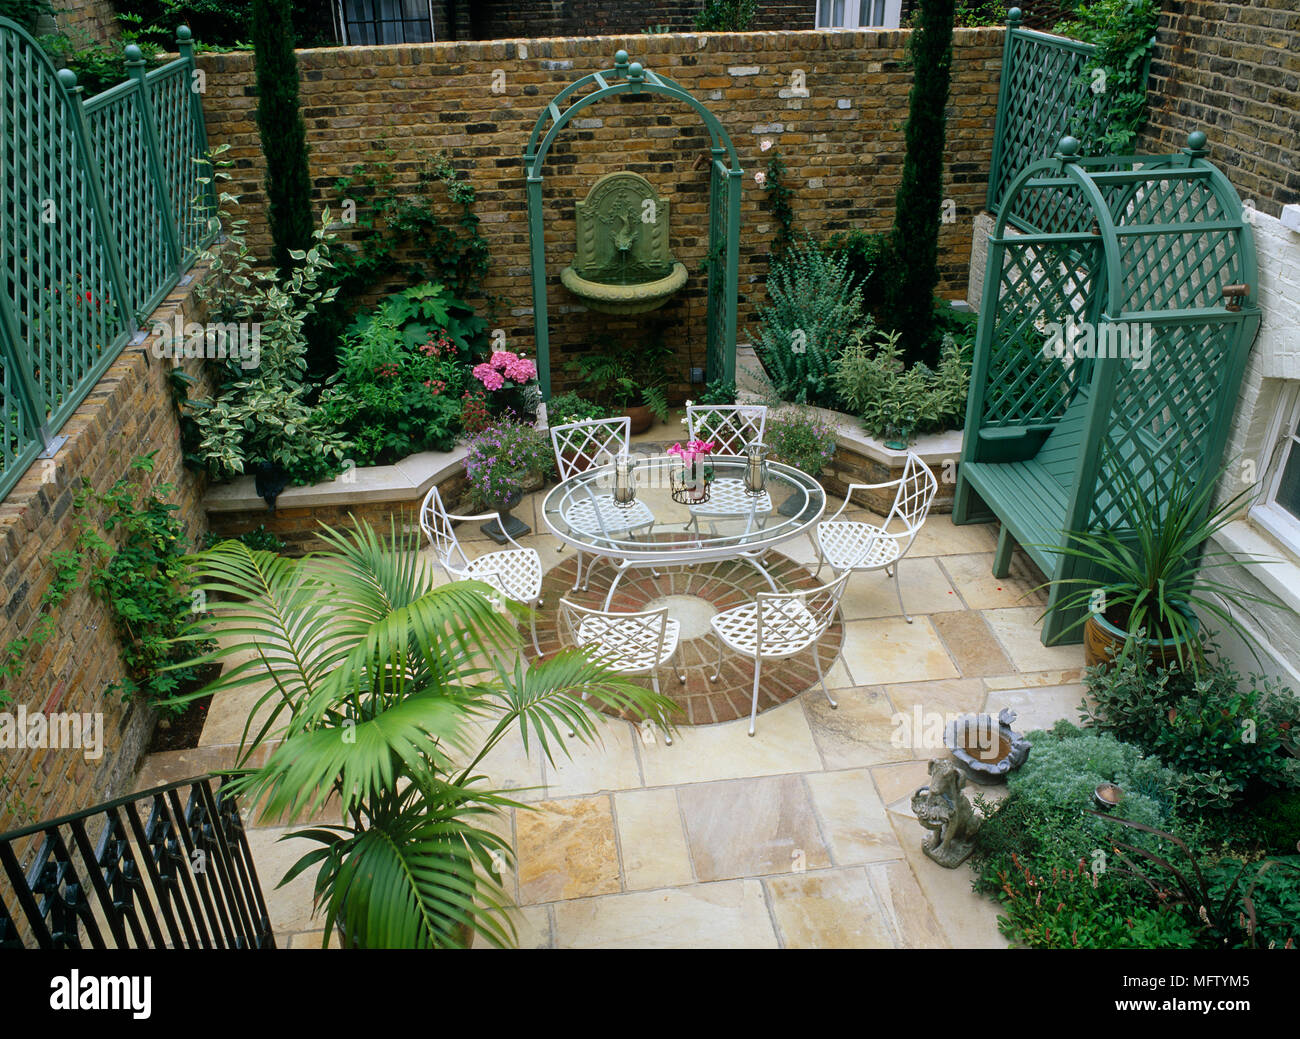 Small Courtyard Garden Uk Stock Photos & Small Courtyard ... on raised water garden, raised long garden, raised deck garden, raised kitchen garden, raised brick garden, raised patio garden, vertical herb garden, raised home garden,